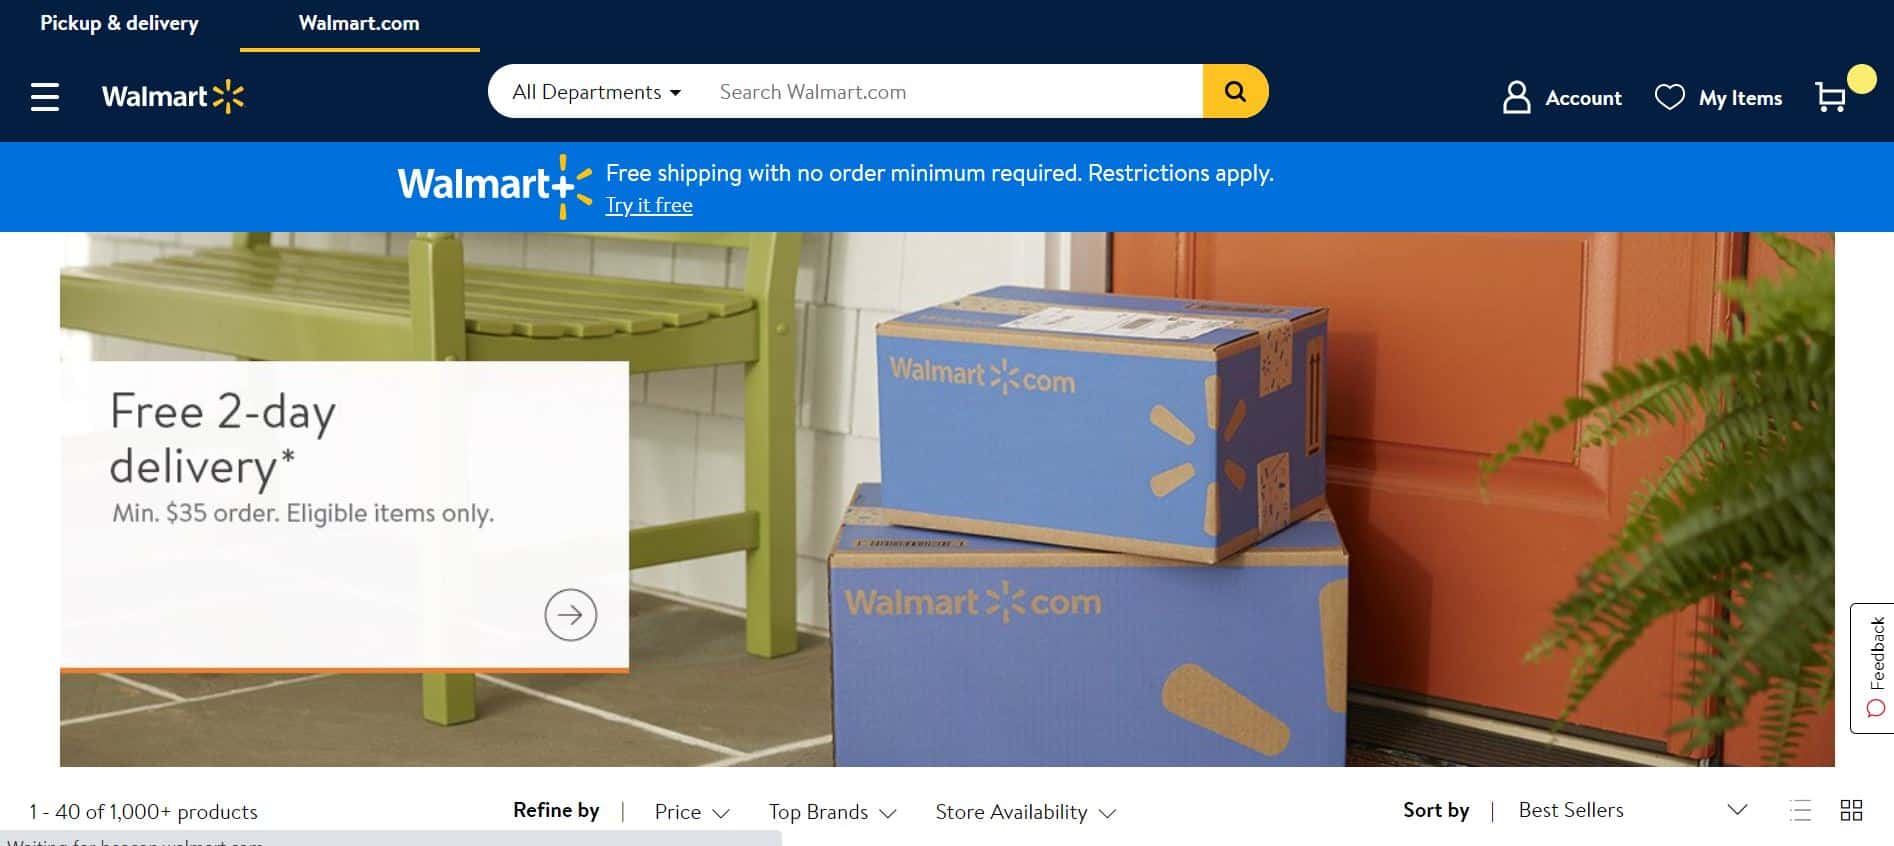 To show readers how Walmart tends to use promotions on its website to increase conversions.